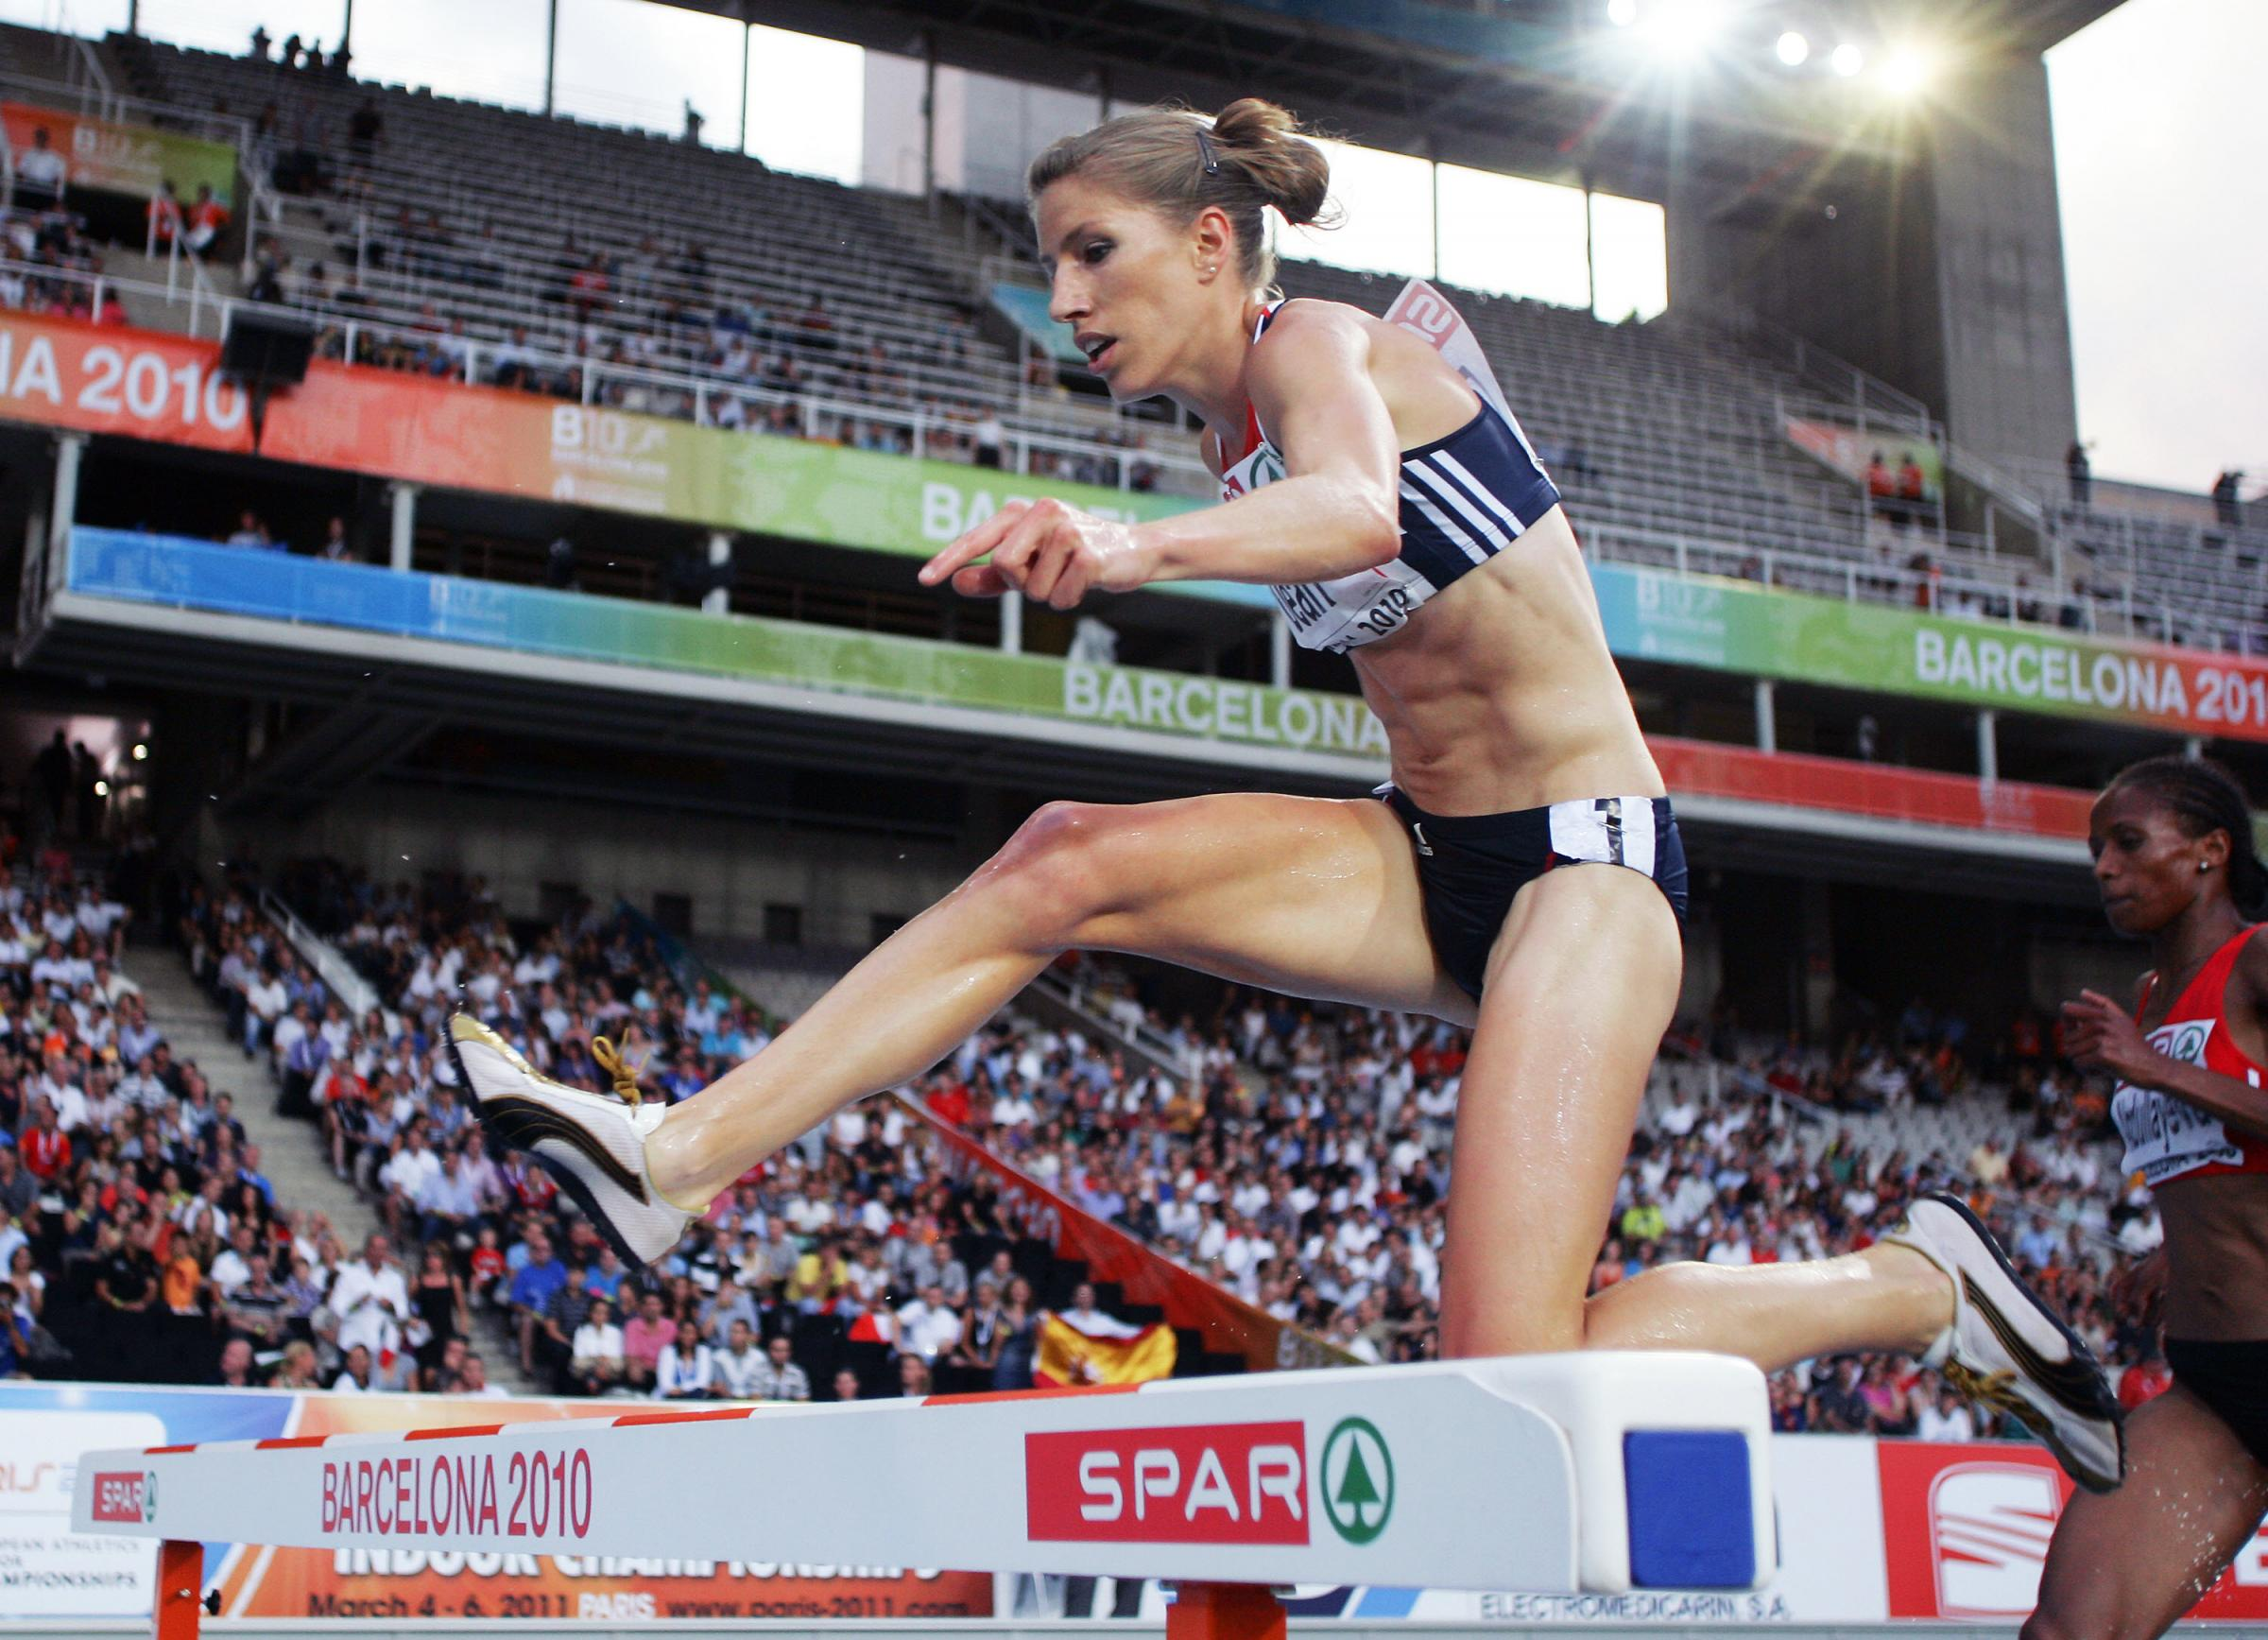 FLASHBACK: Hatti Archer in action at the 2010 European Championships in Barcelona where she finished fourth, but has since been promoted to silver after two rivals were disqualified after being found guilty of doping